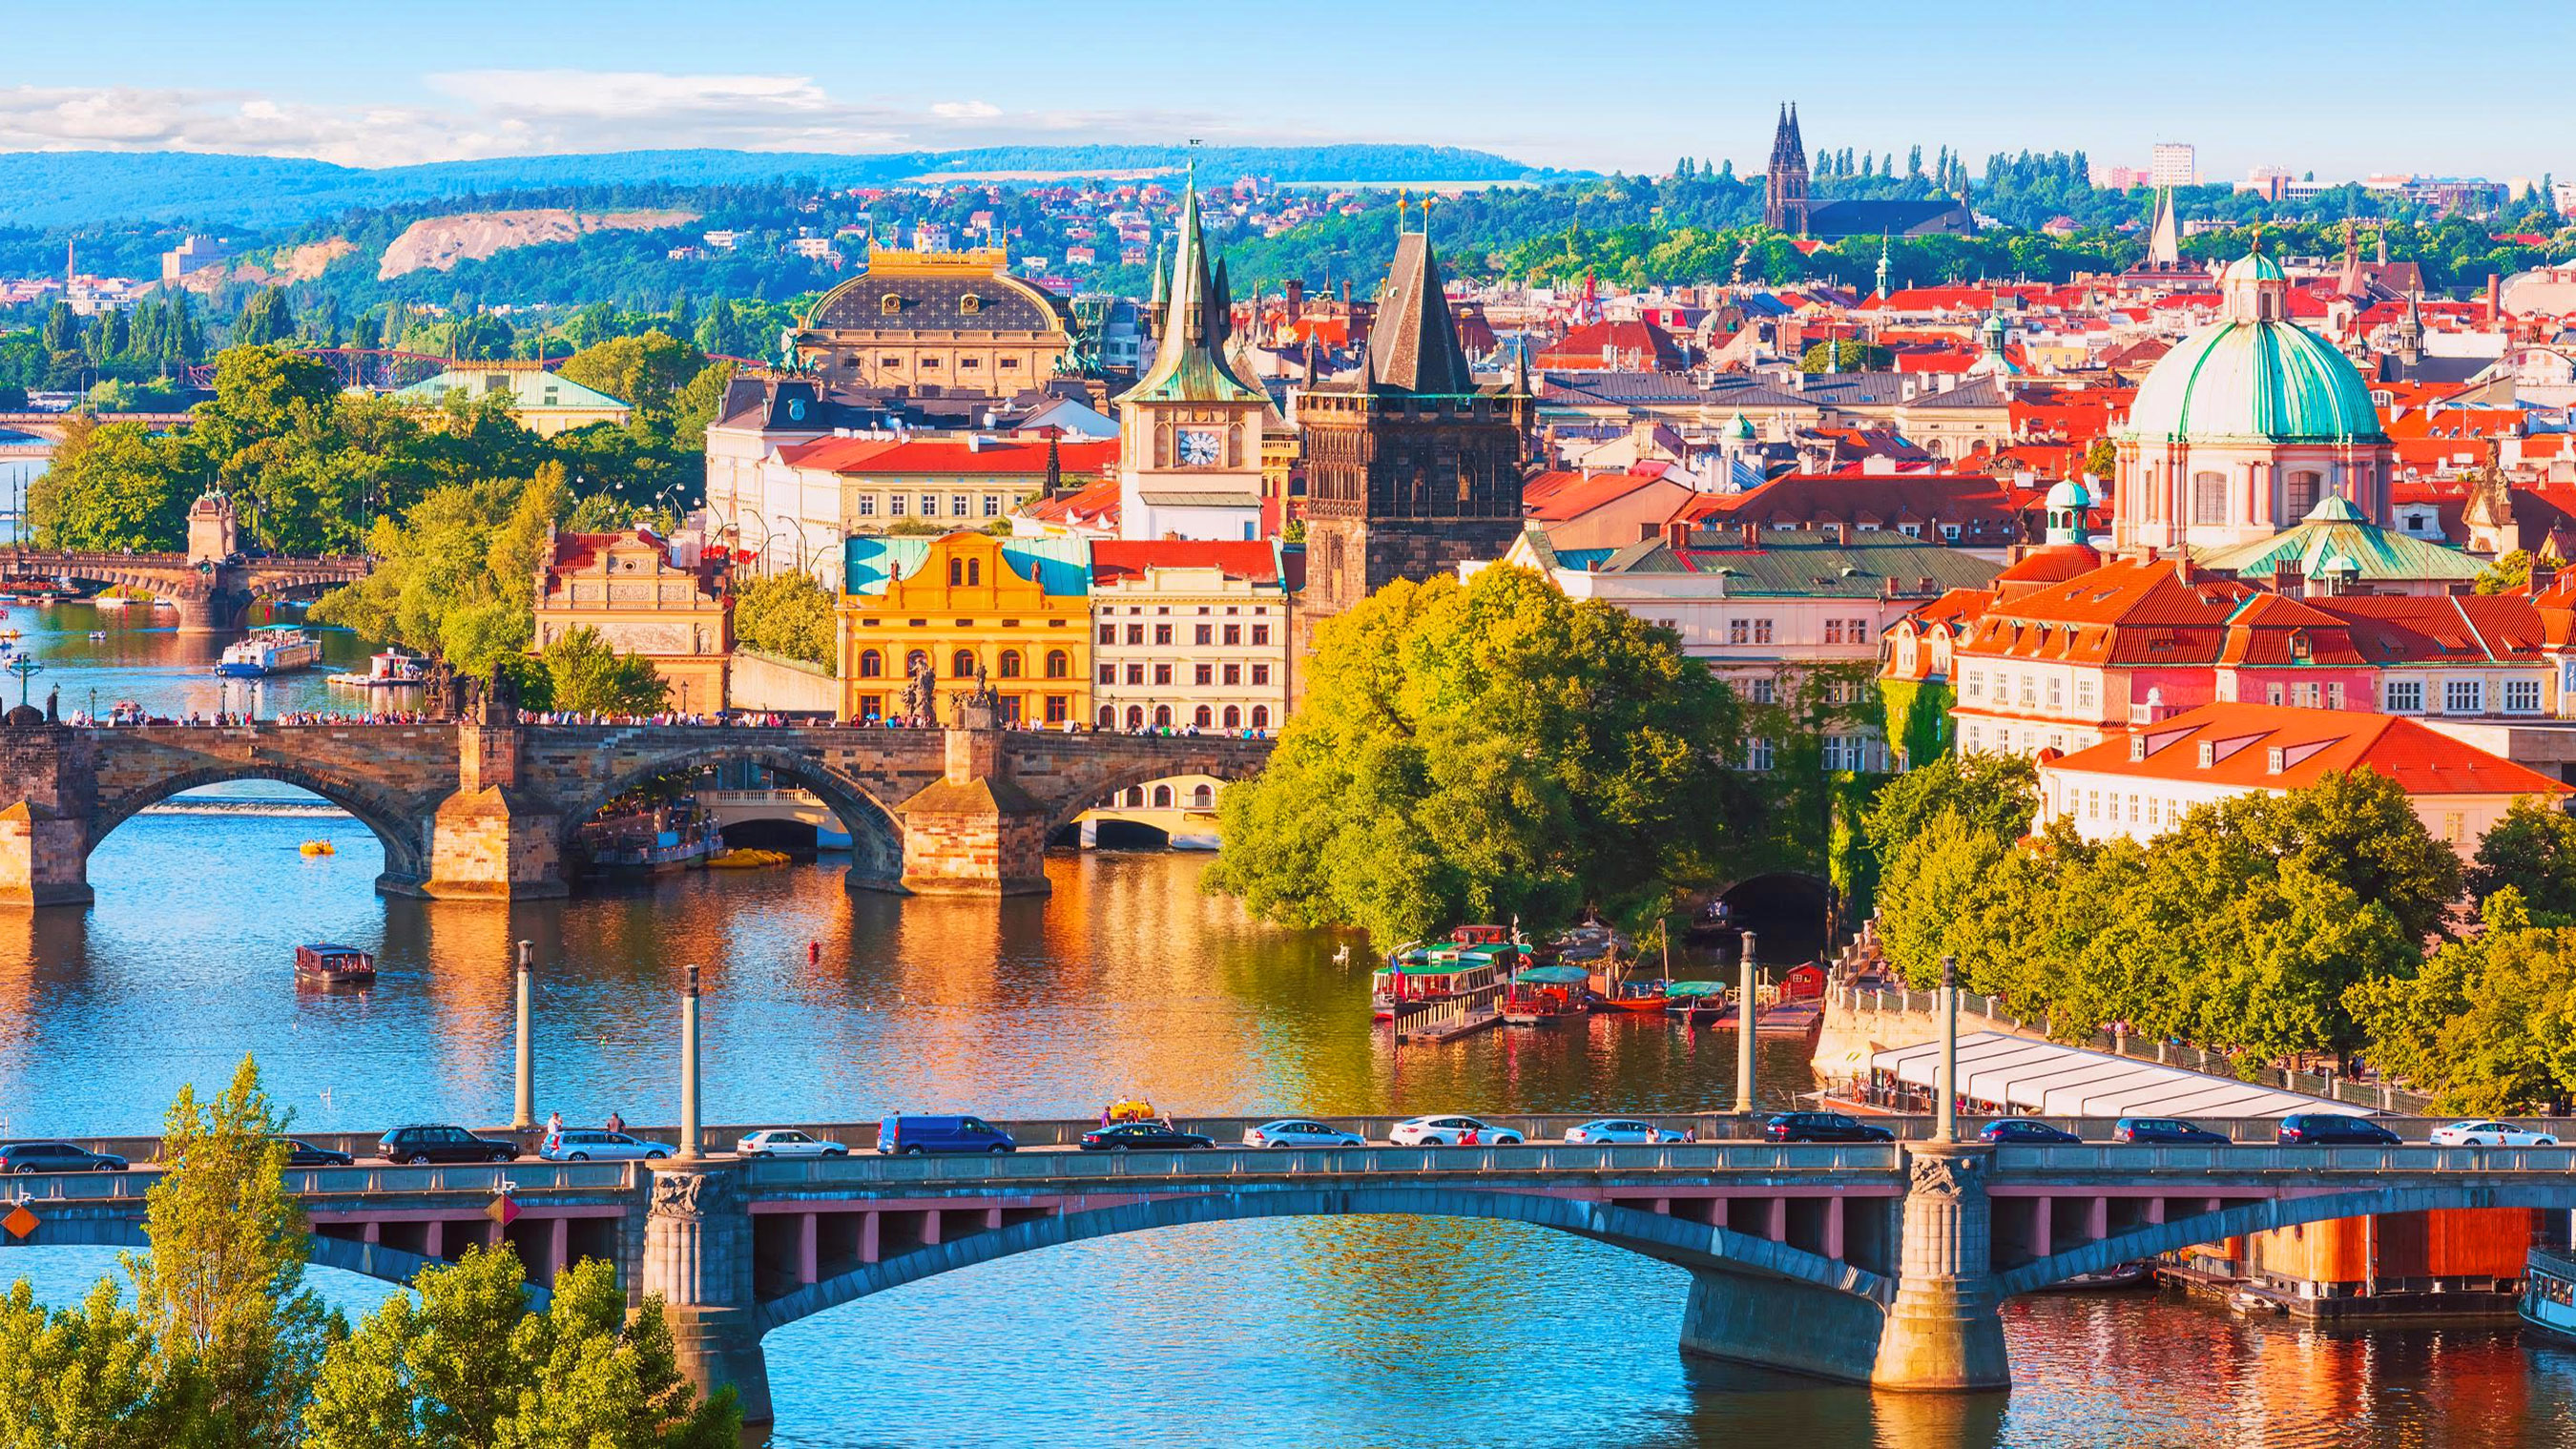 10 places in Prague where Prague residents go 1